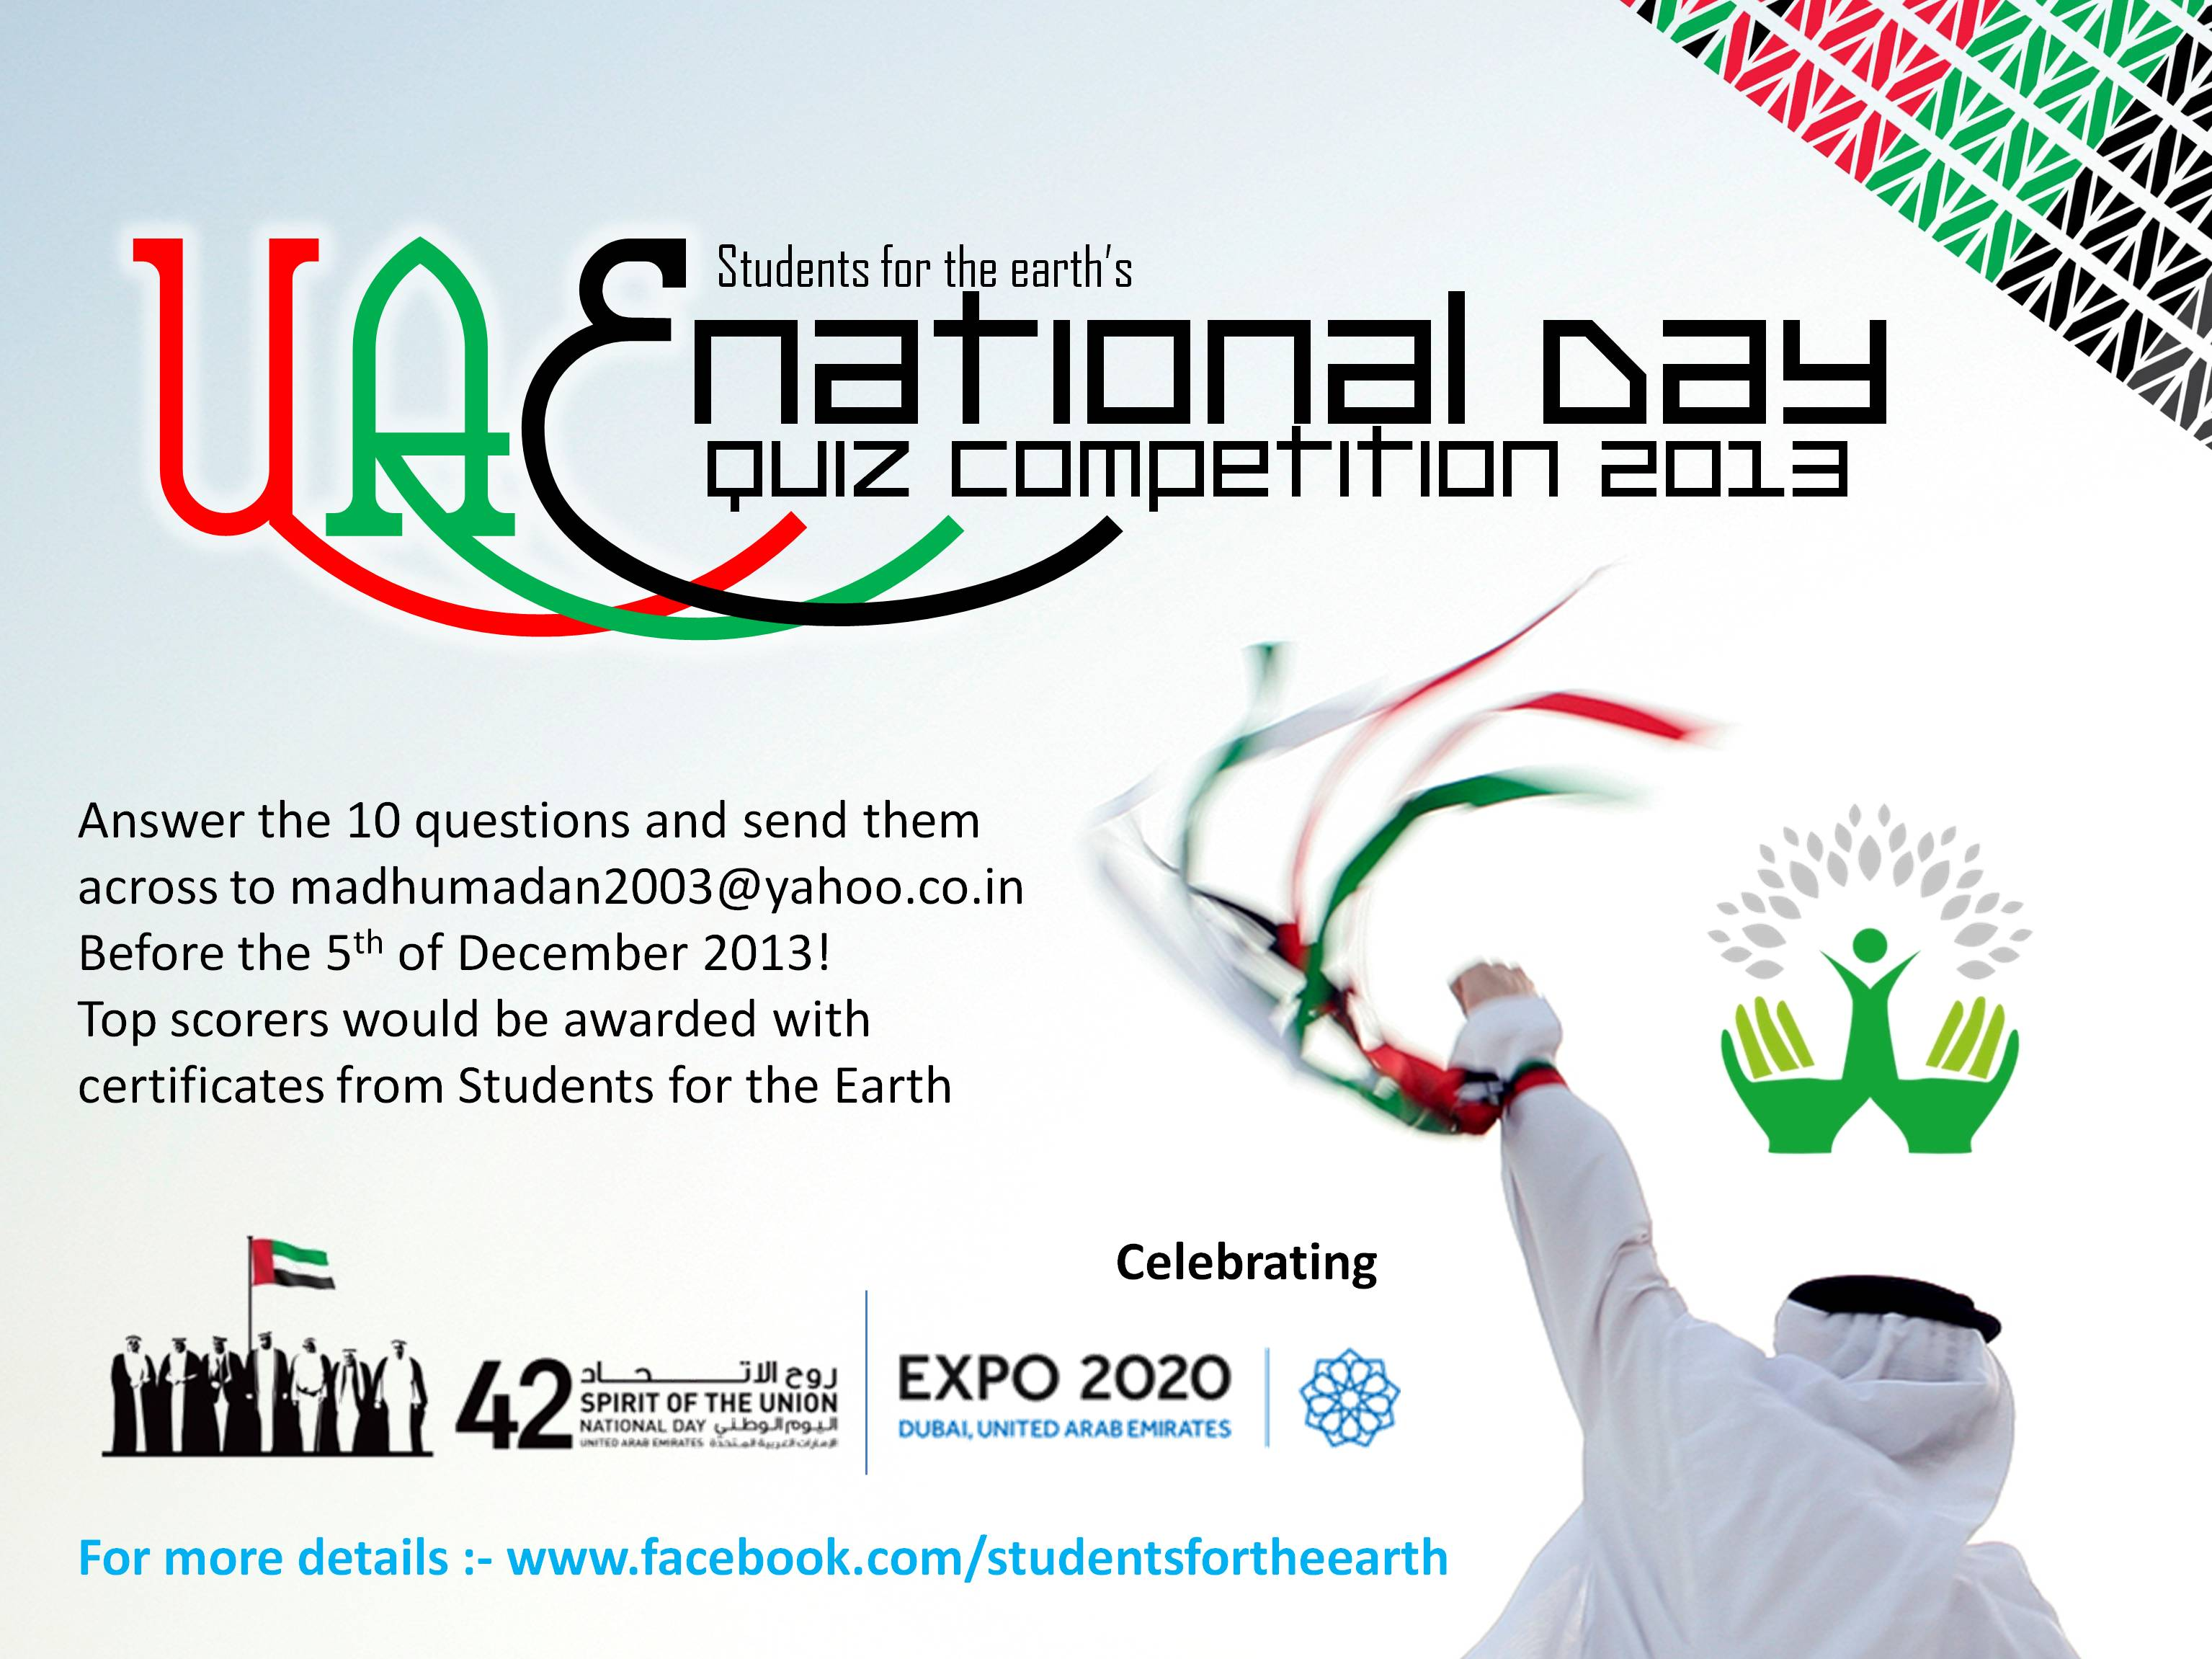 UAE National Day Quiz Competition - Opportunities - Our